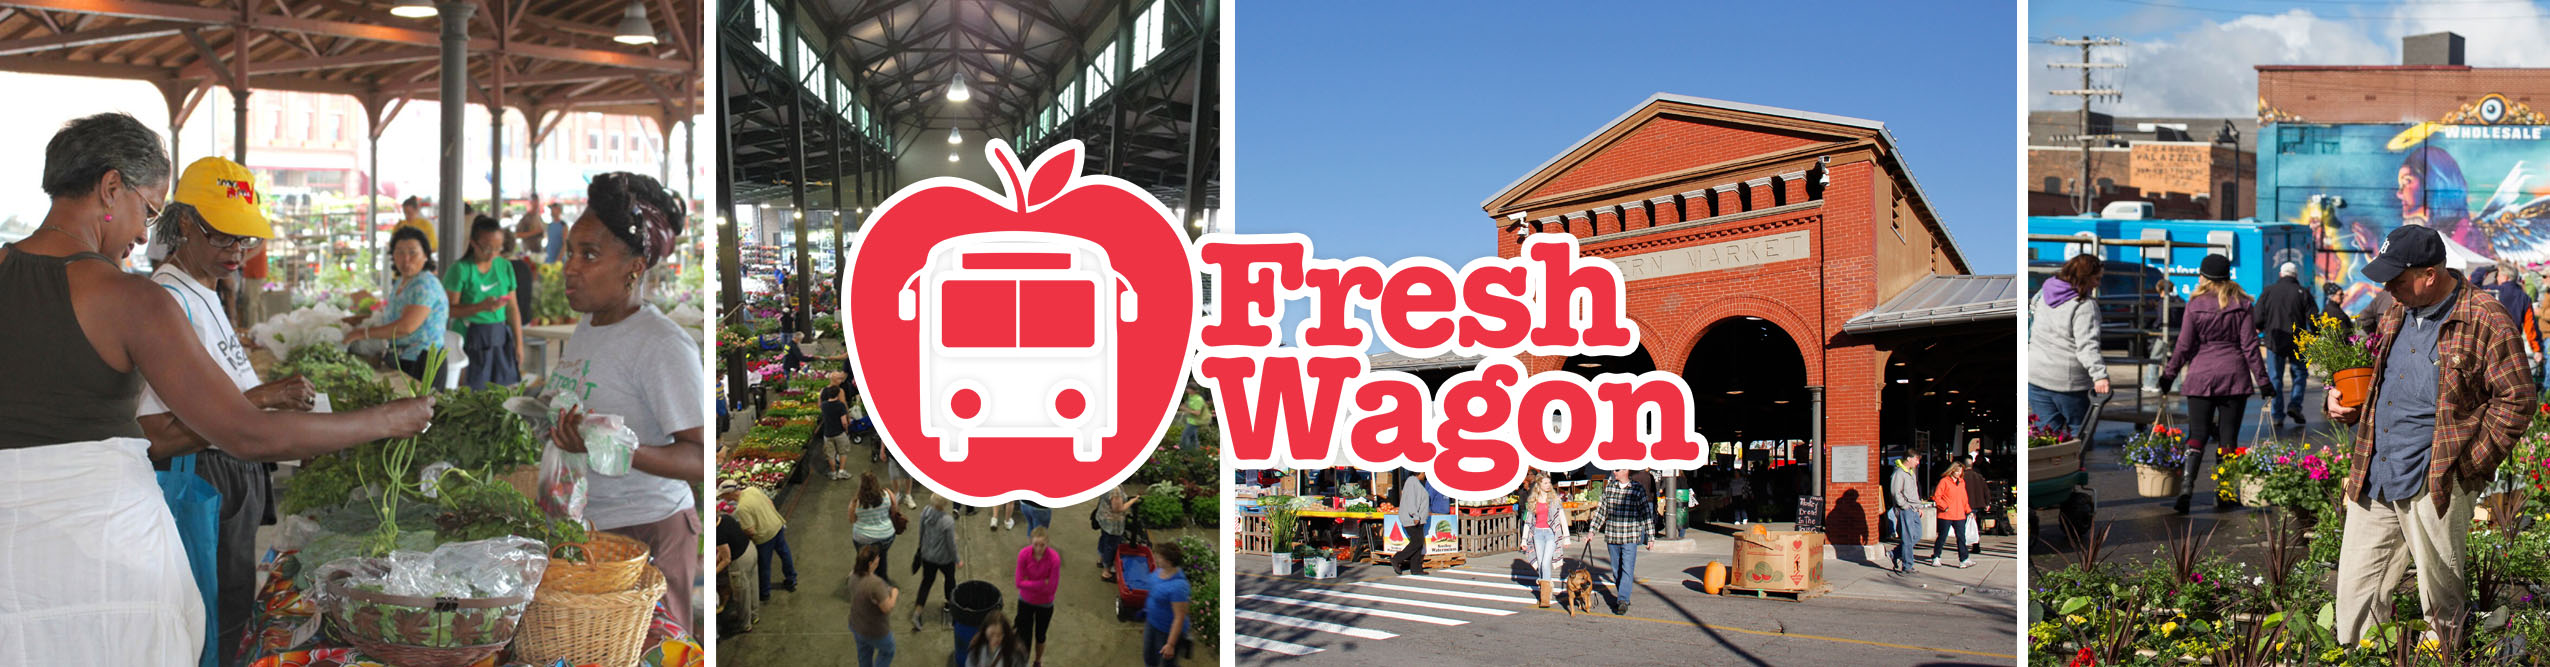 Freshwagon Header